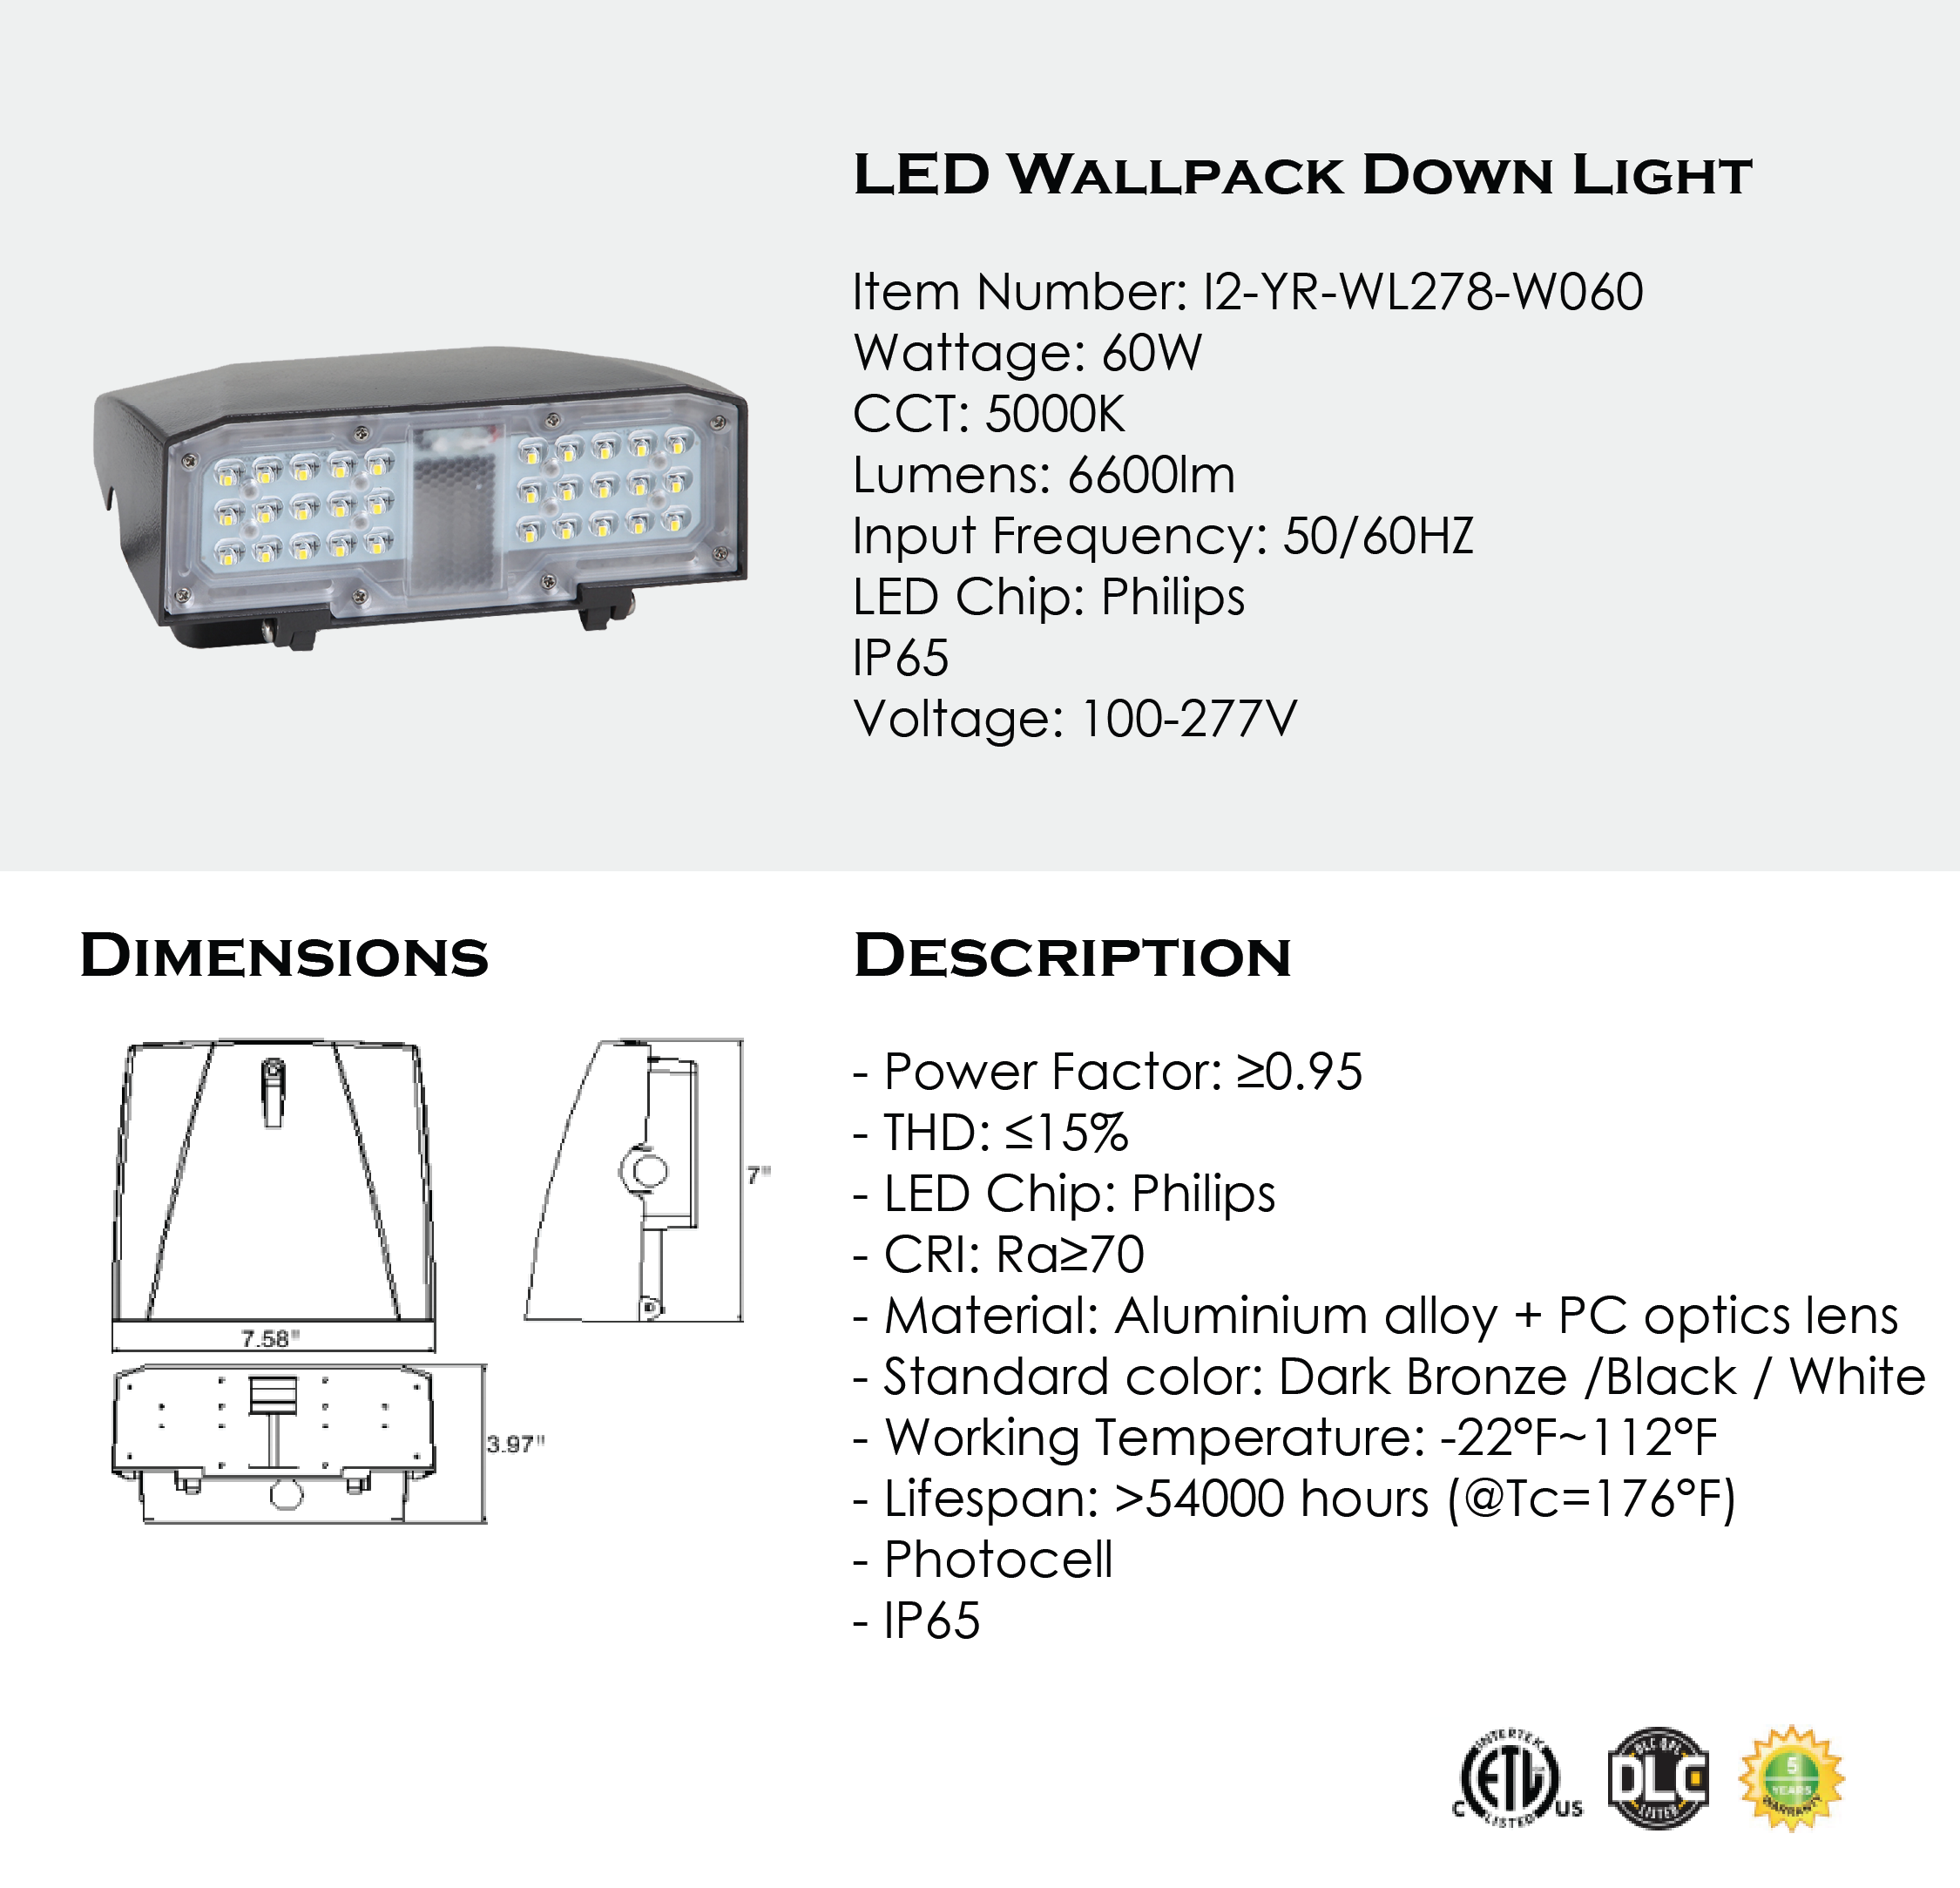 led-wallpack-down-light.png